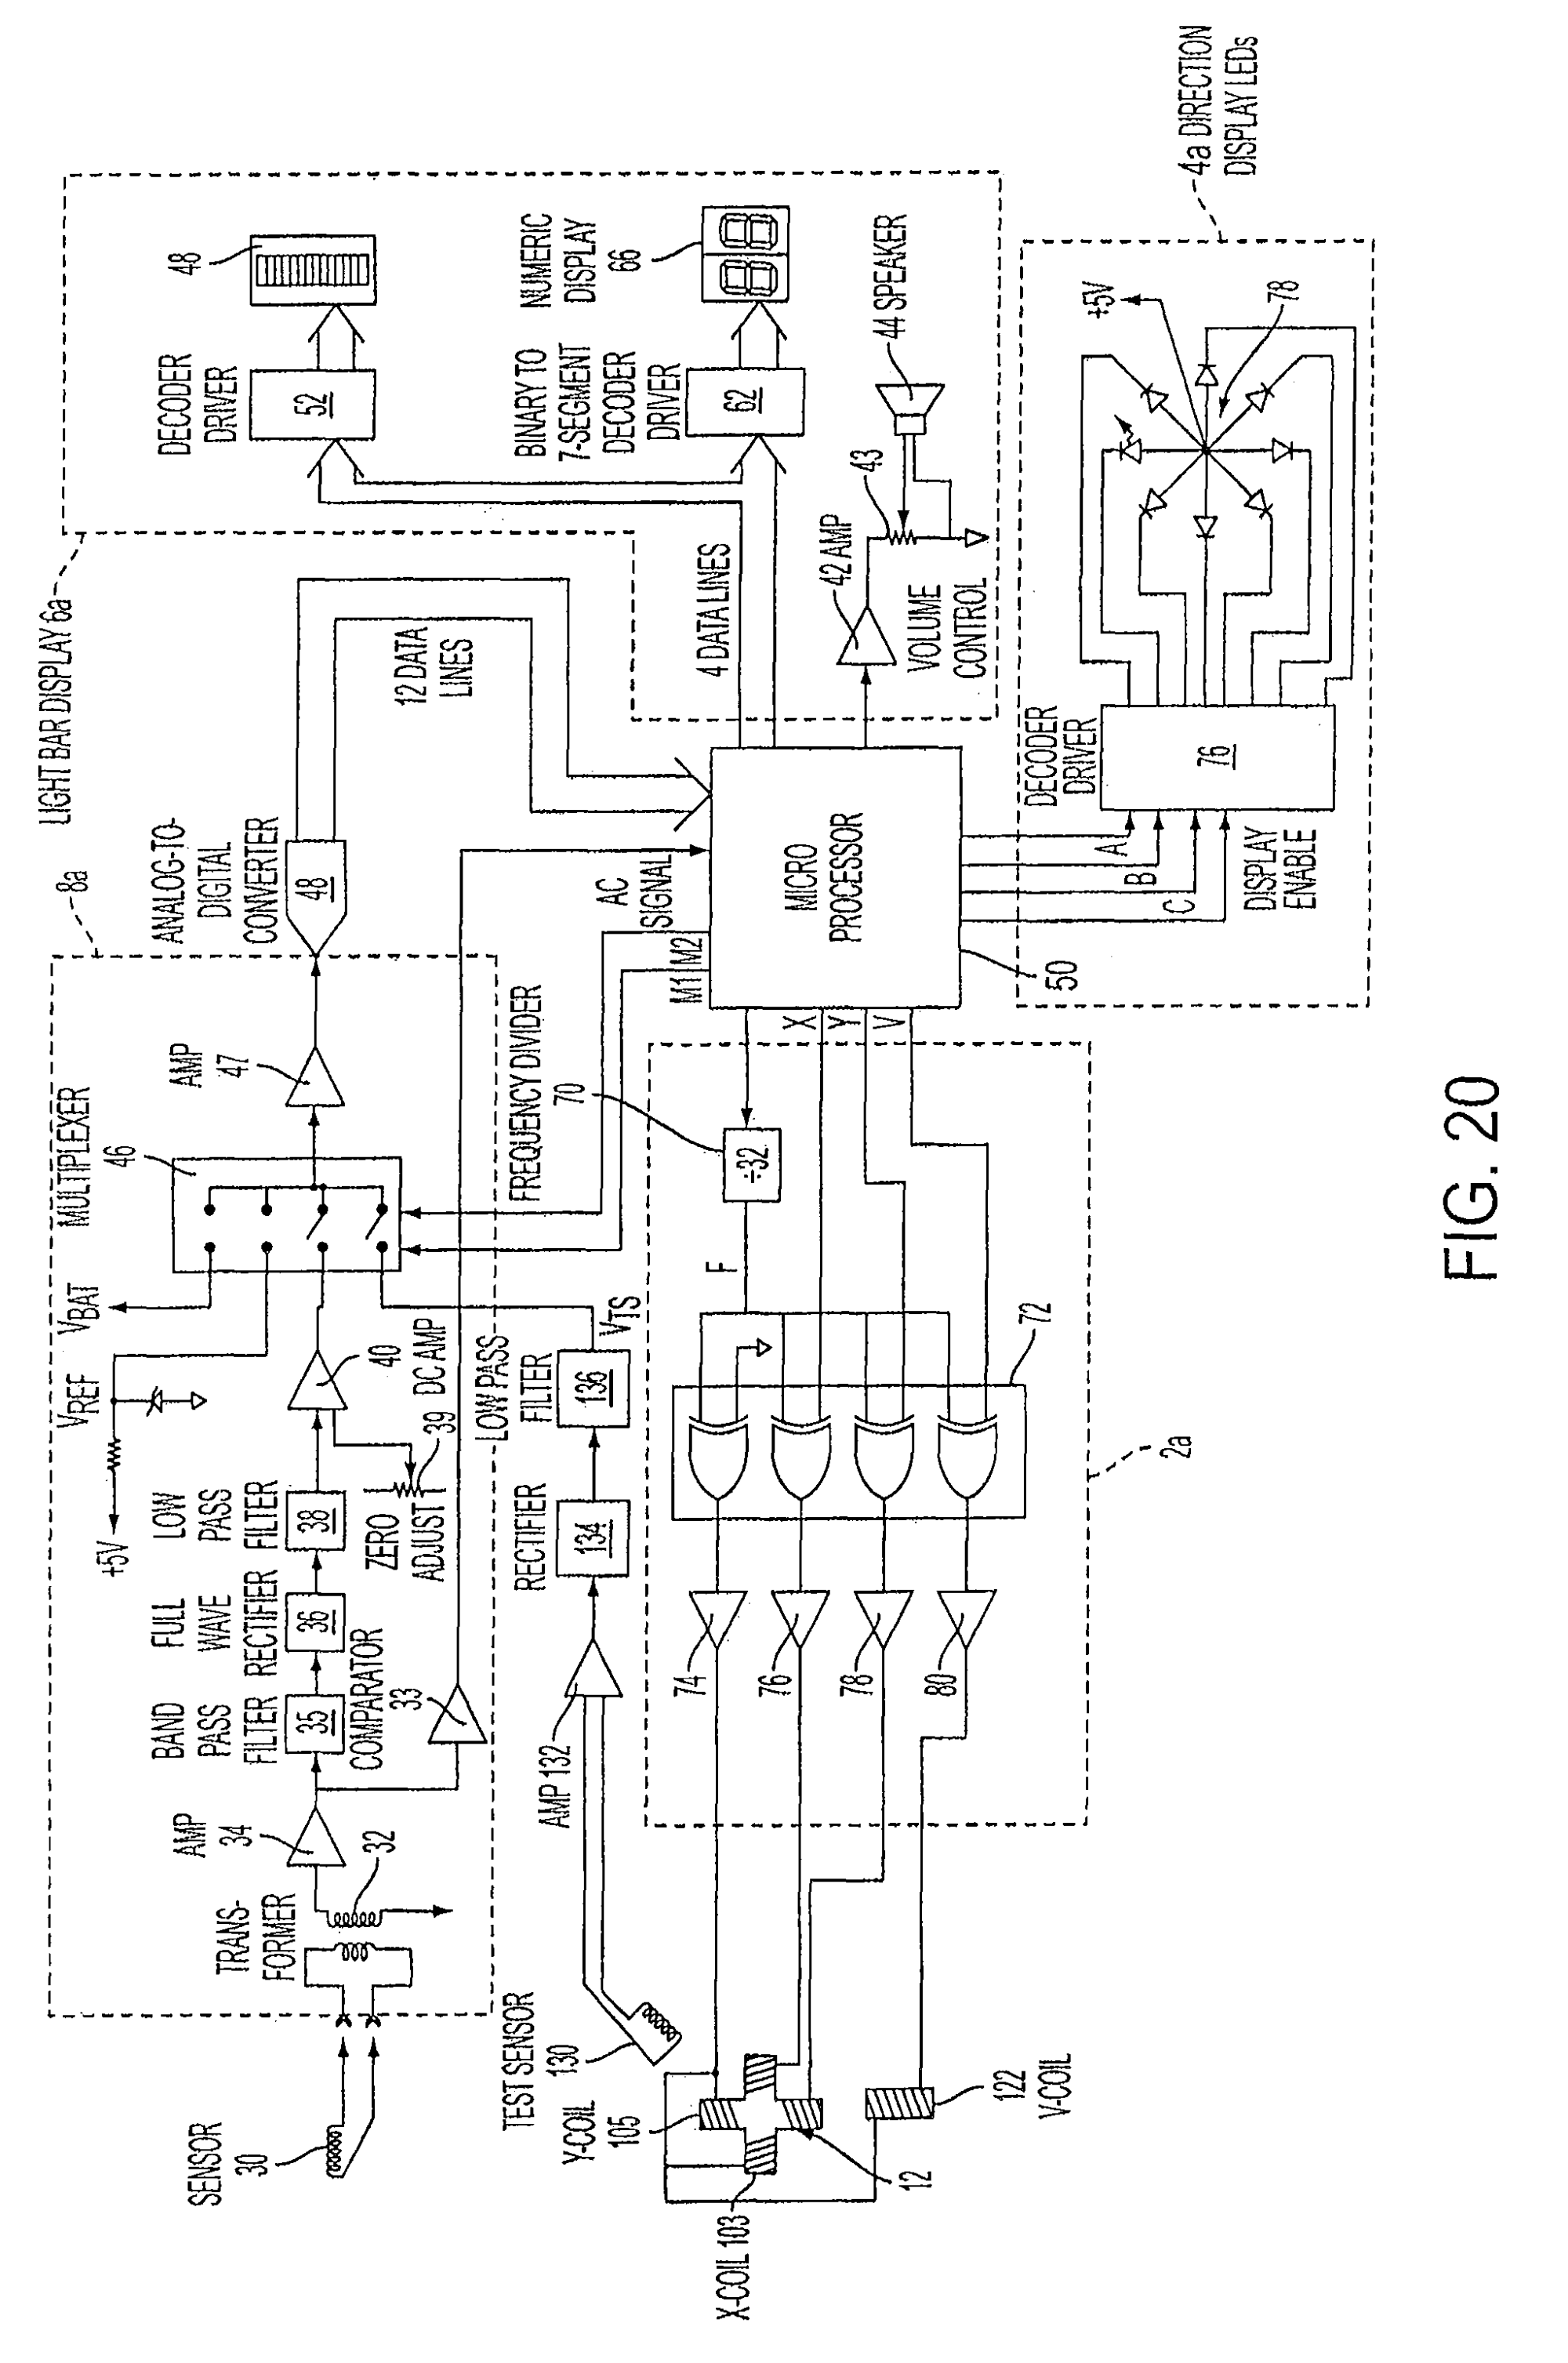 hight resolution of amt 626 wiring diagram wire center u2022 rh naiadesign co 1989 john deere amt 622 used